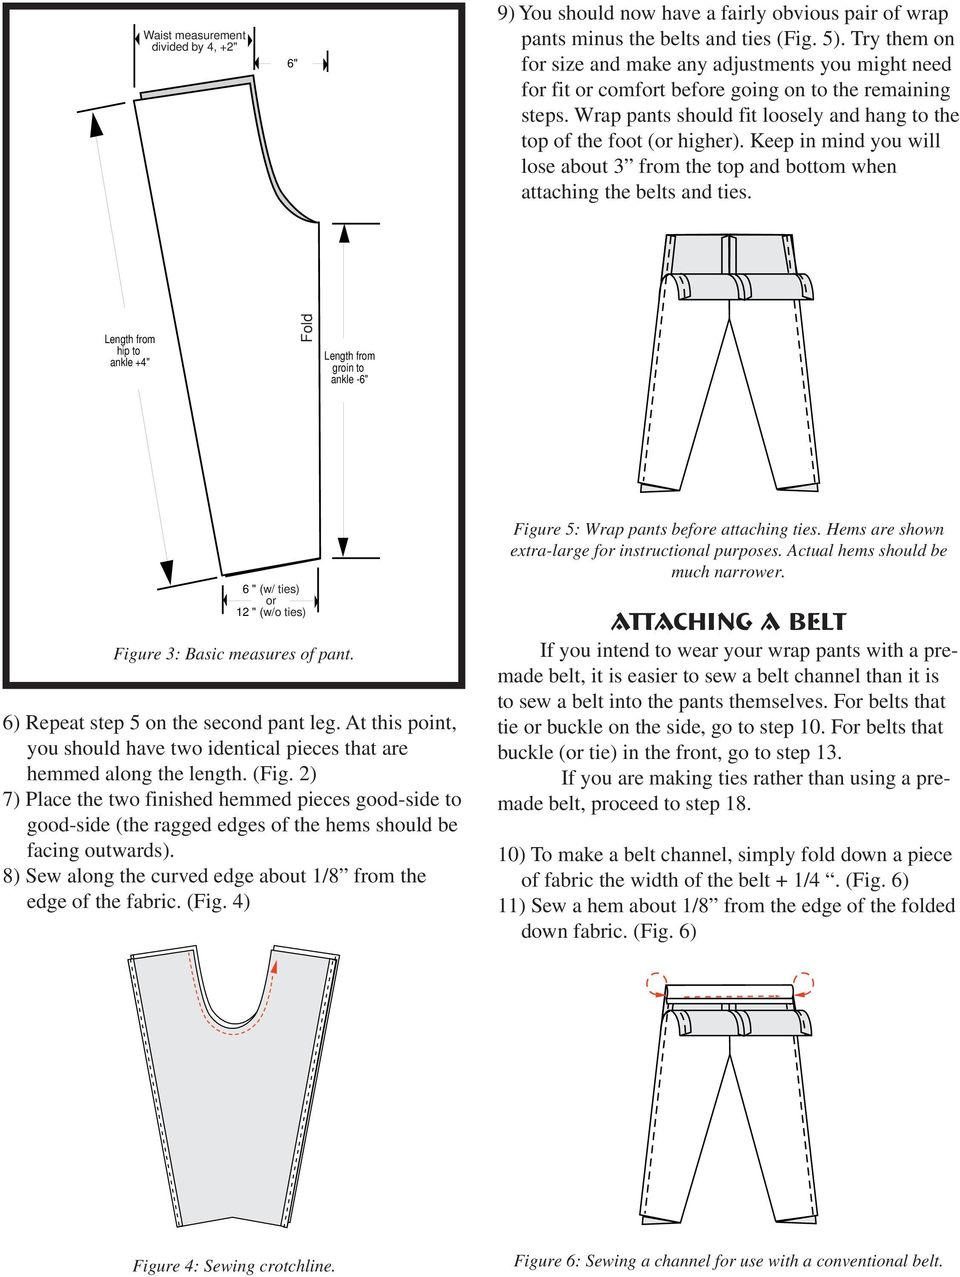 Keep in mind you will lose about 3 from the top and bottom when attaching the belts and ties.